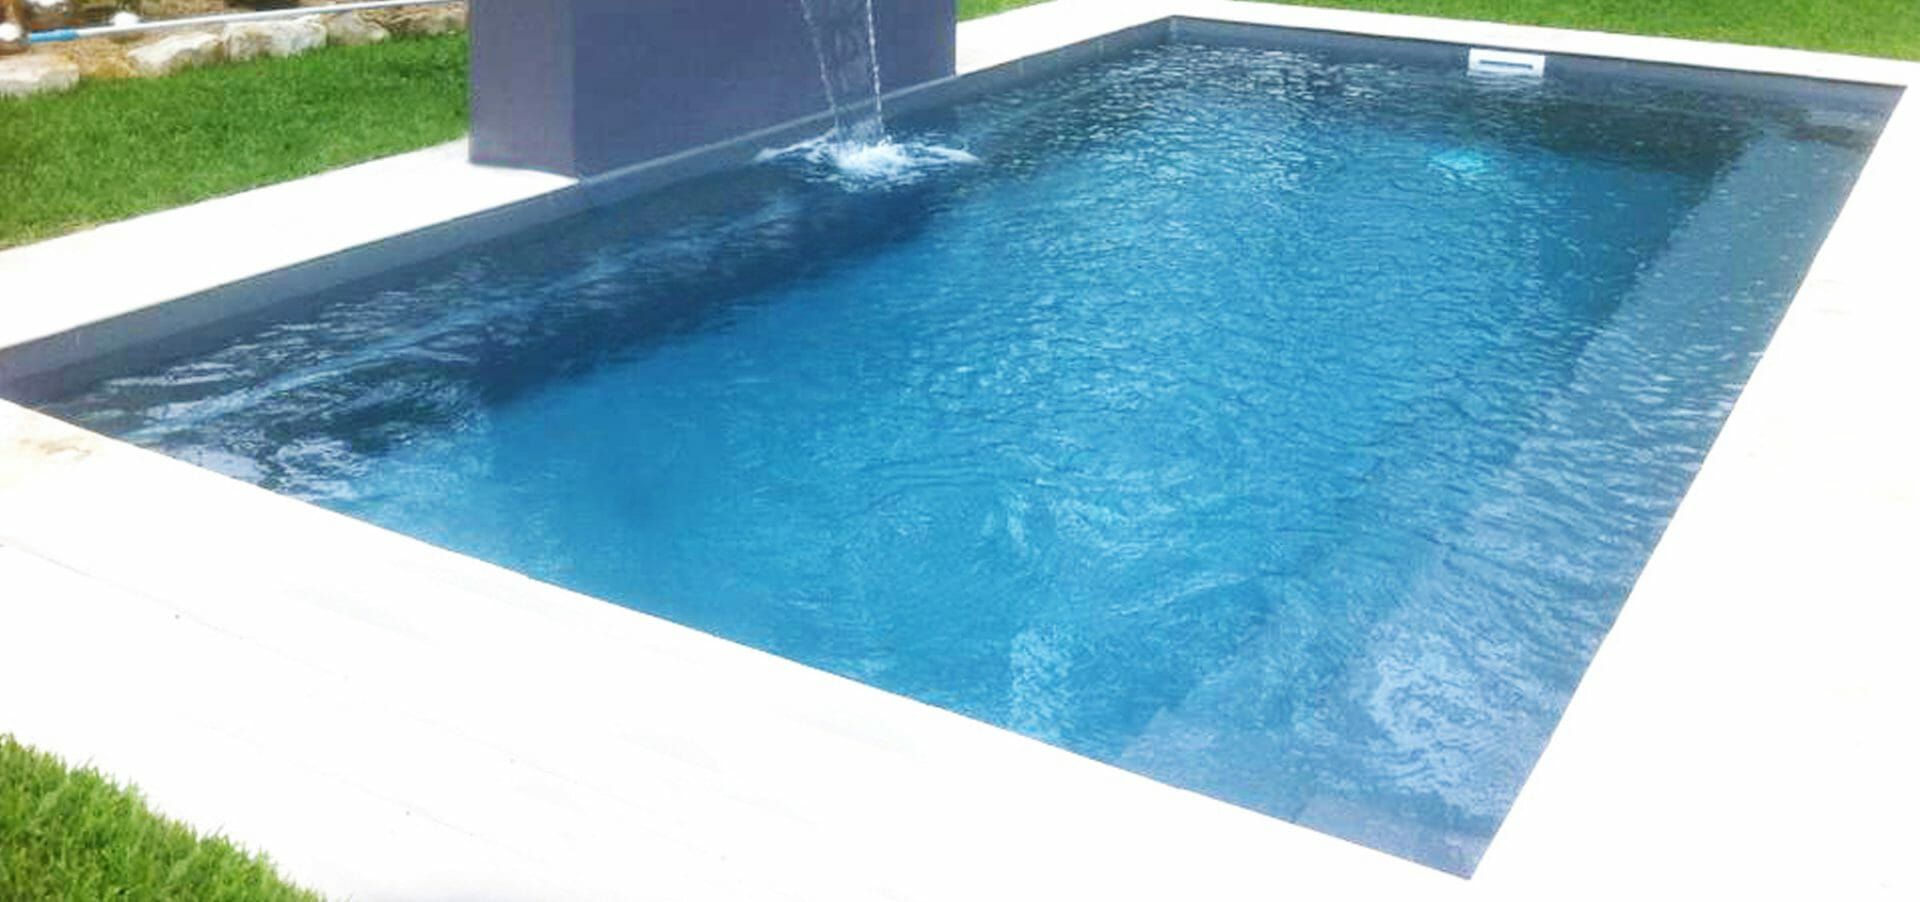 Harmony design Fibreglass pool with water feature and coping by Leisure Pools